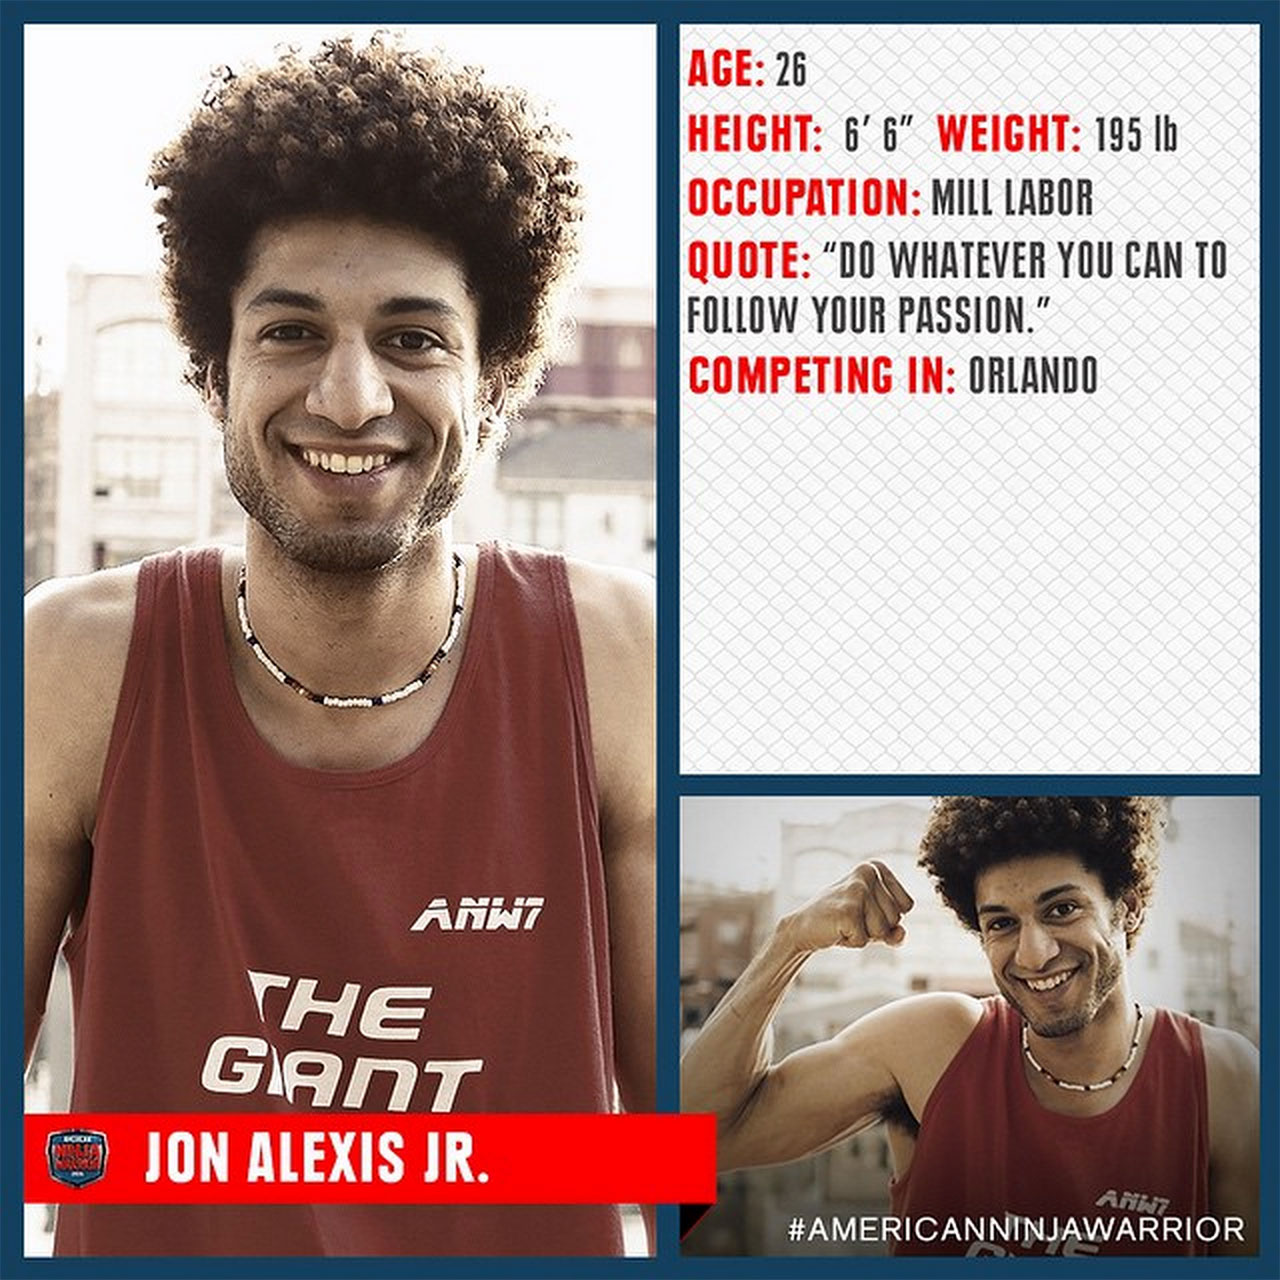 Jon Alexis Jr completes Orlando Qualifier of 'American Ninja Warrior'